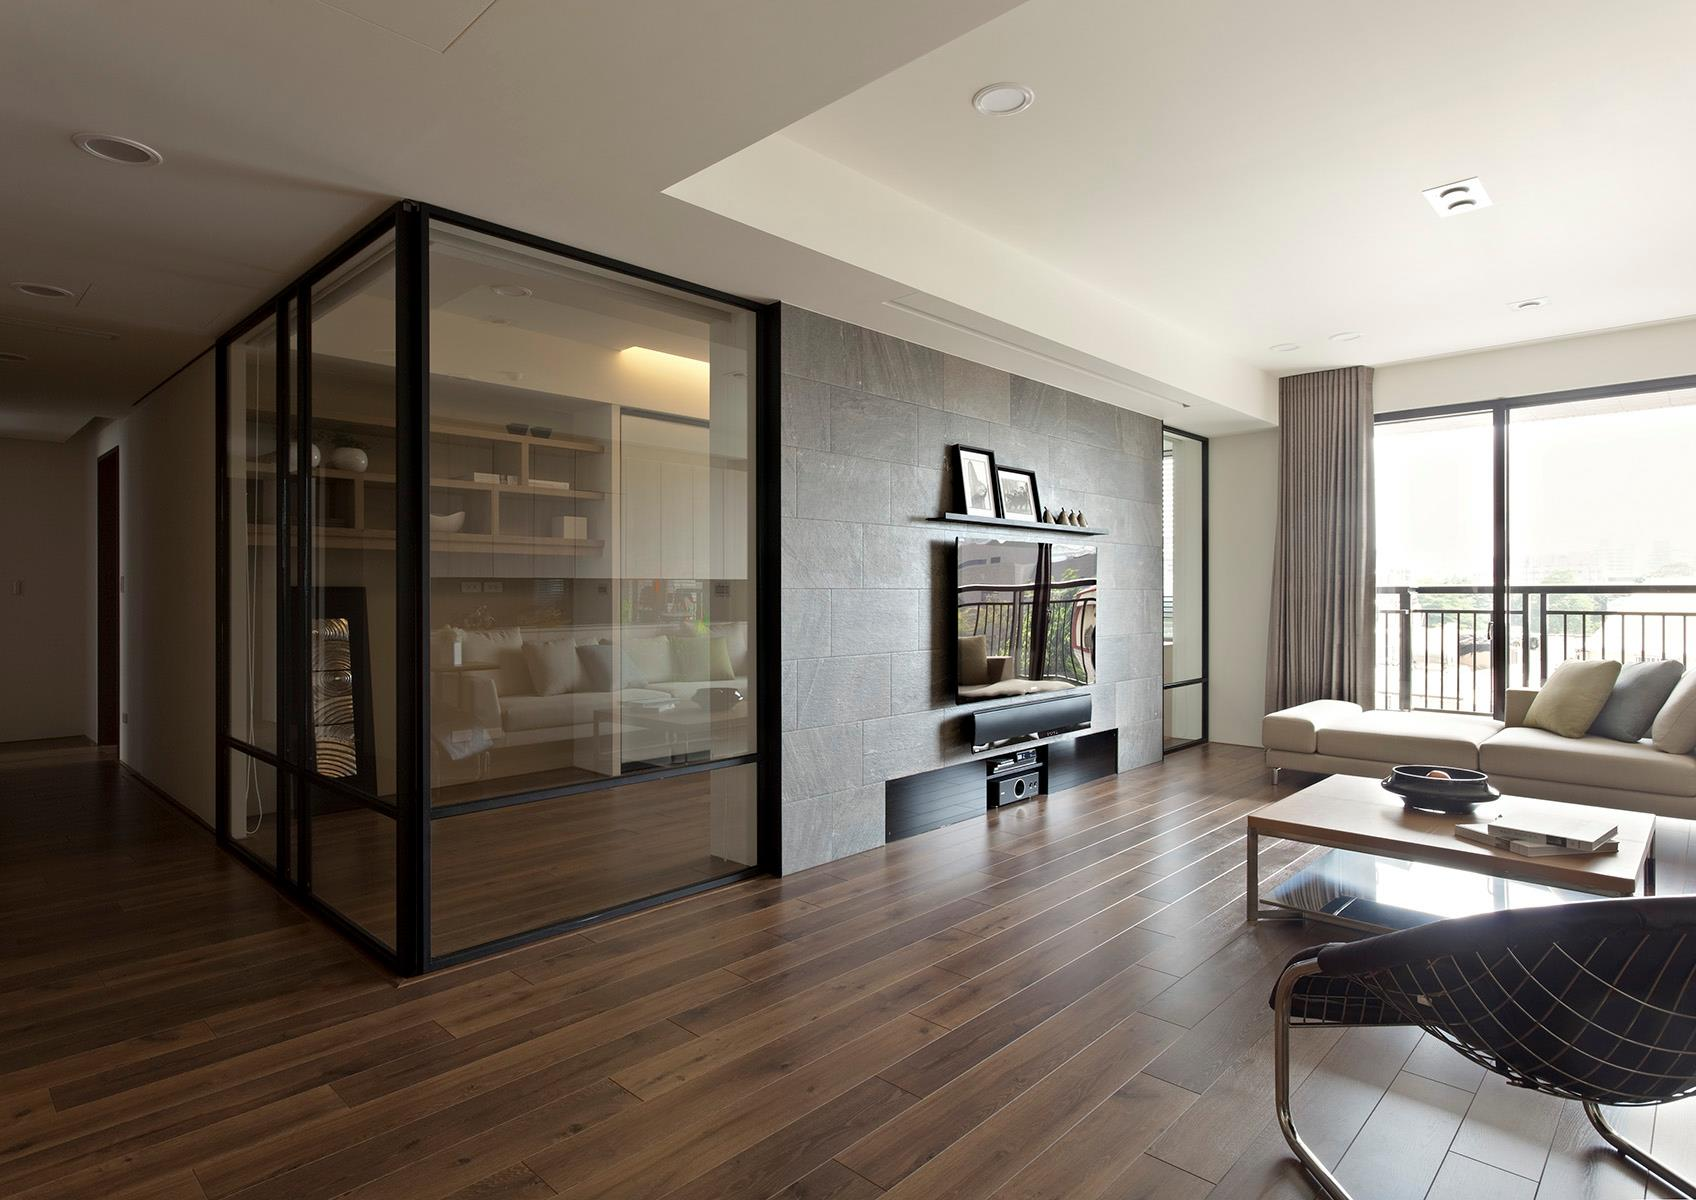 Apartment with a retractable interior wall